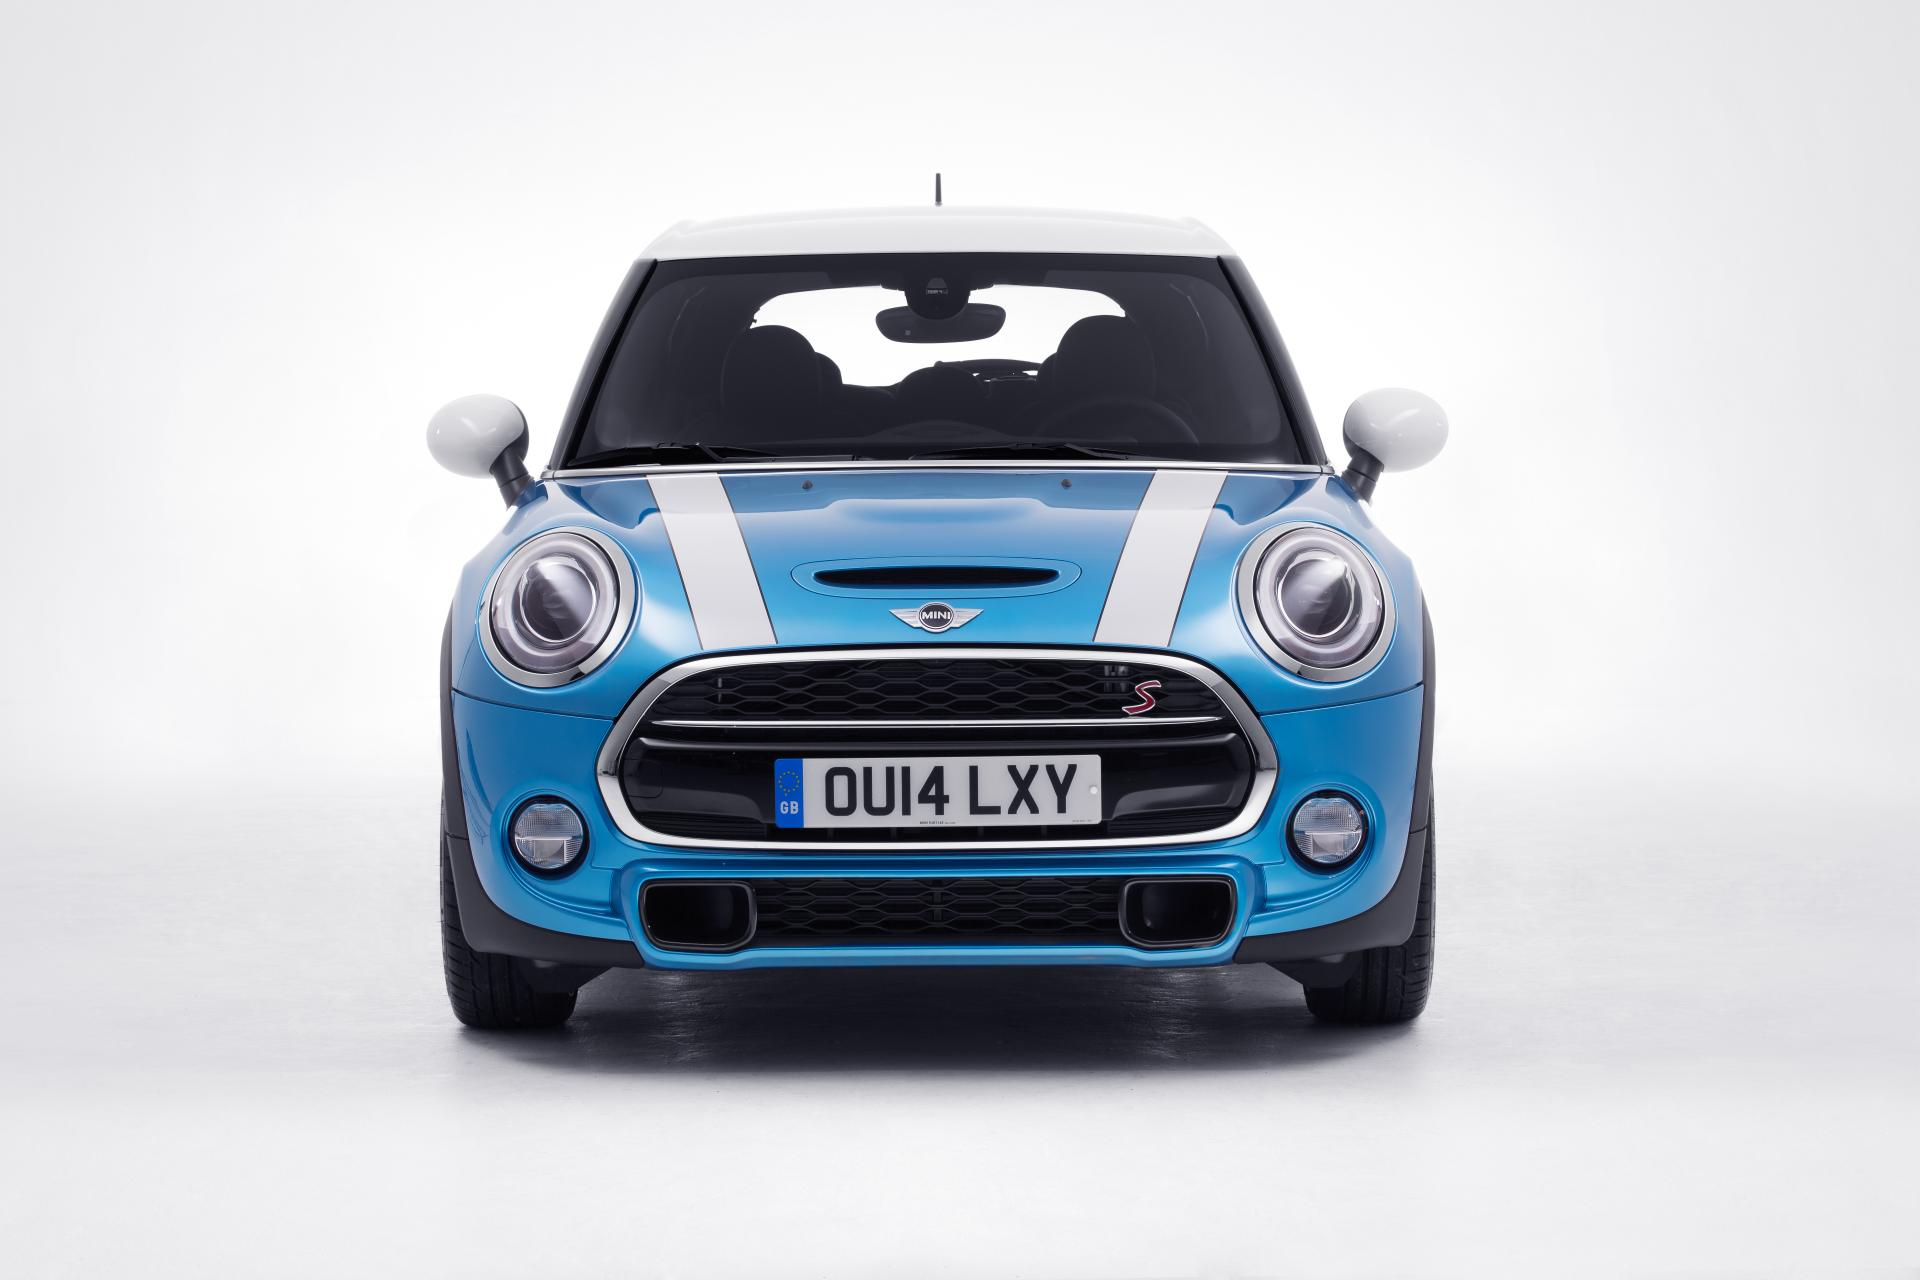 2015 MINI Cooper 5-door News and Information